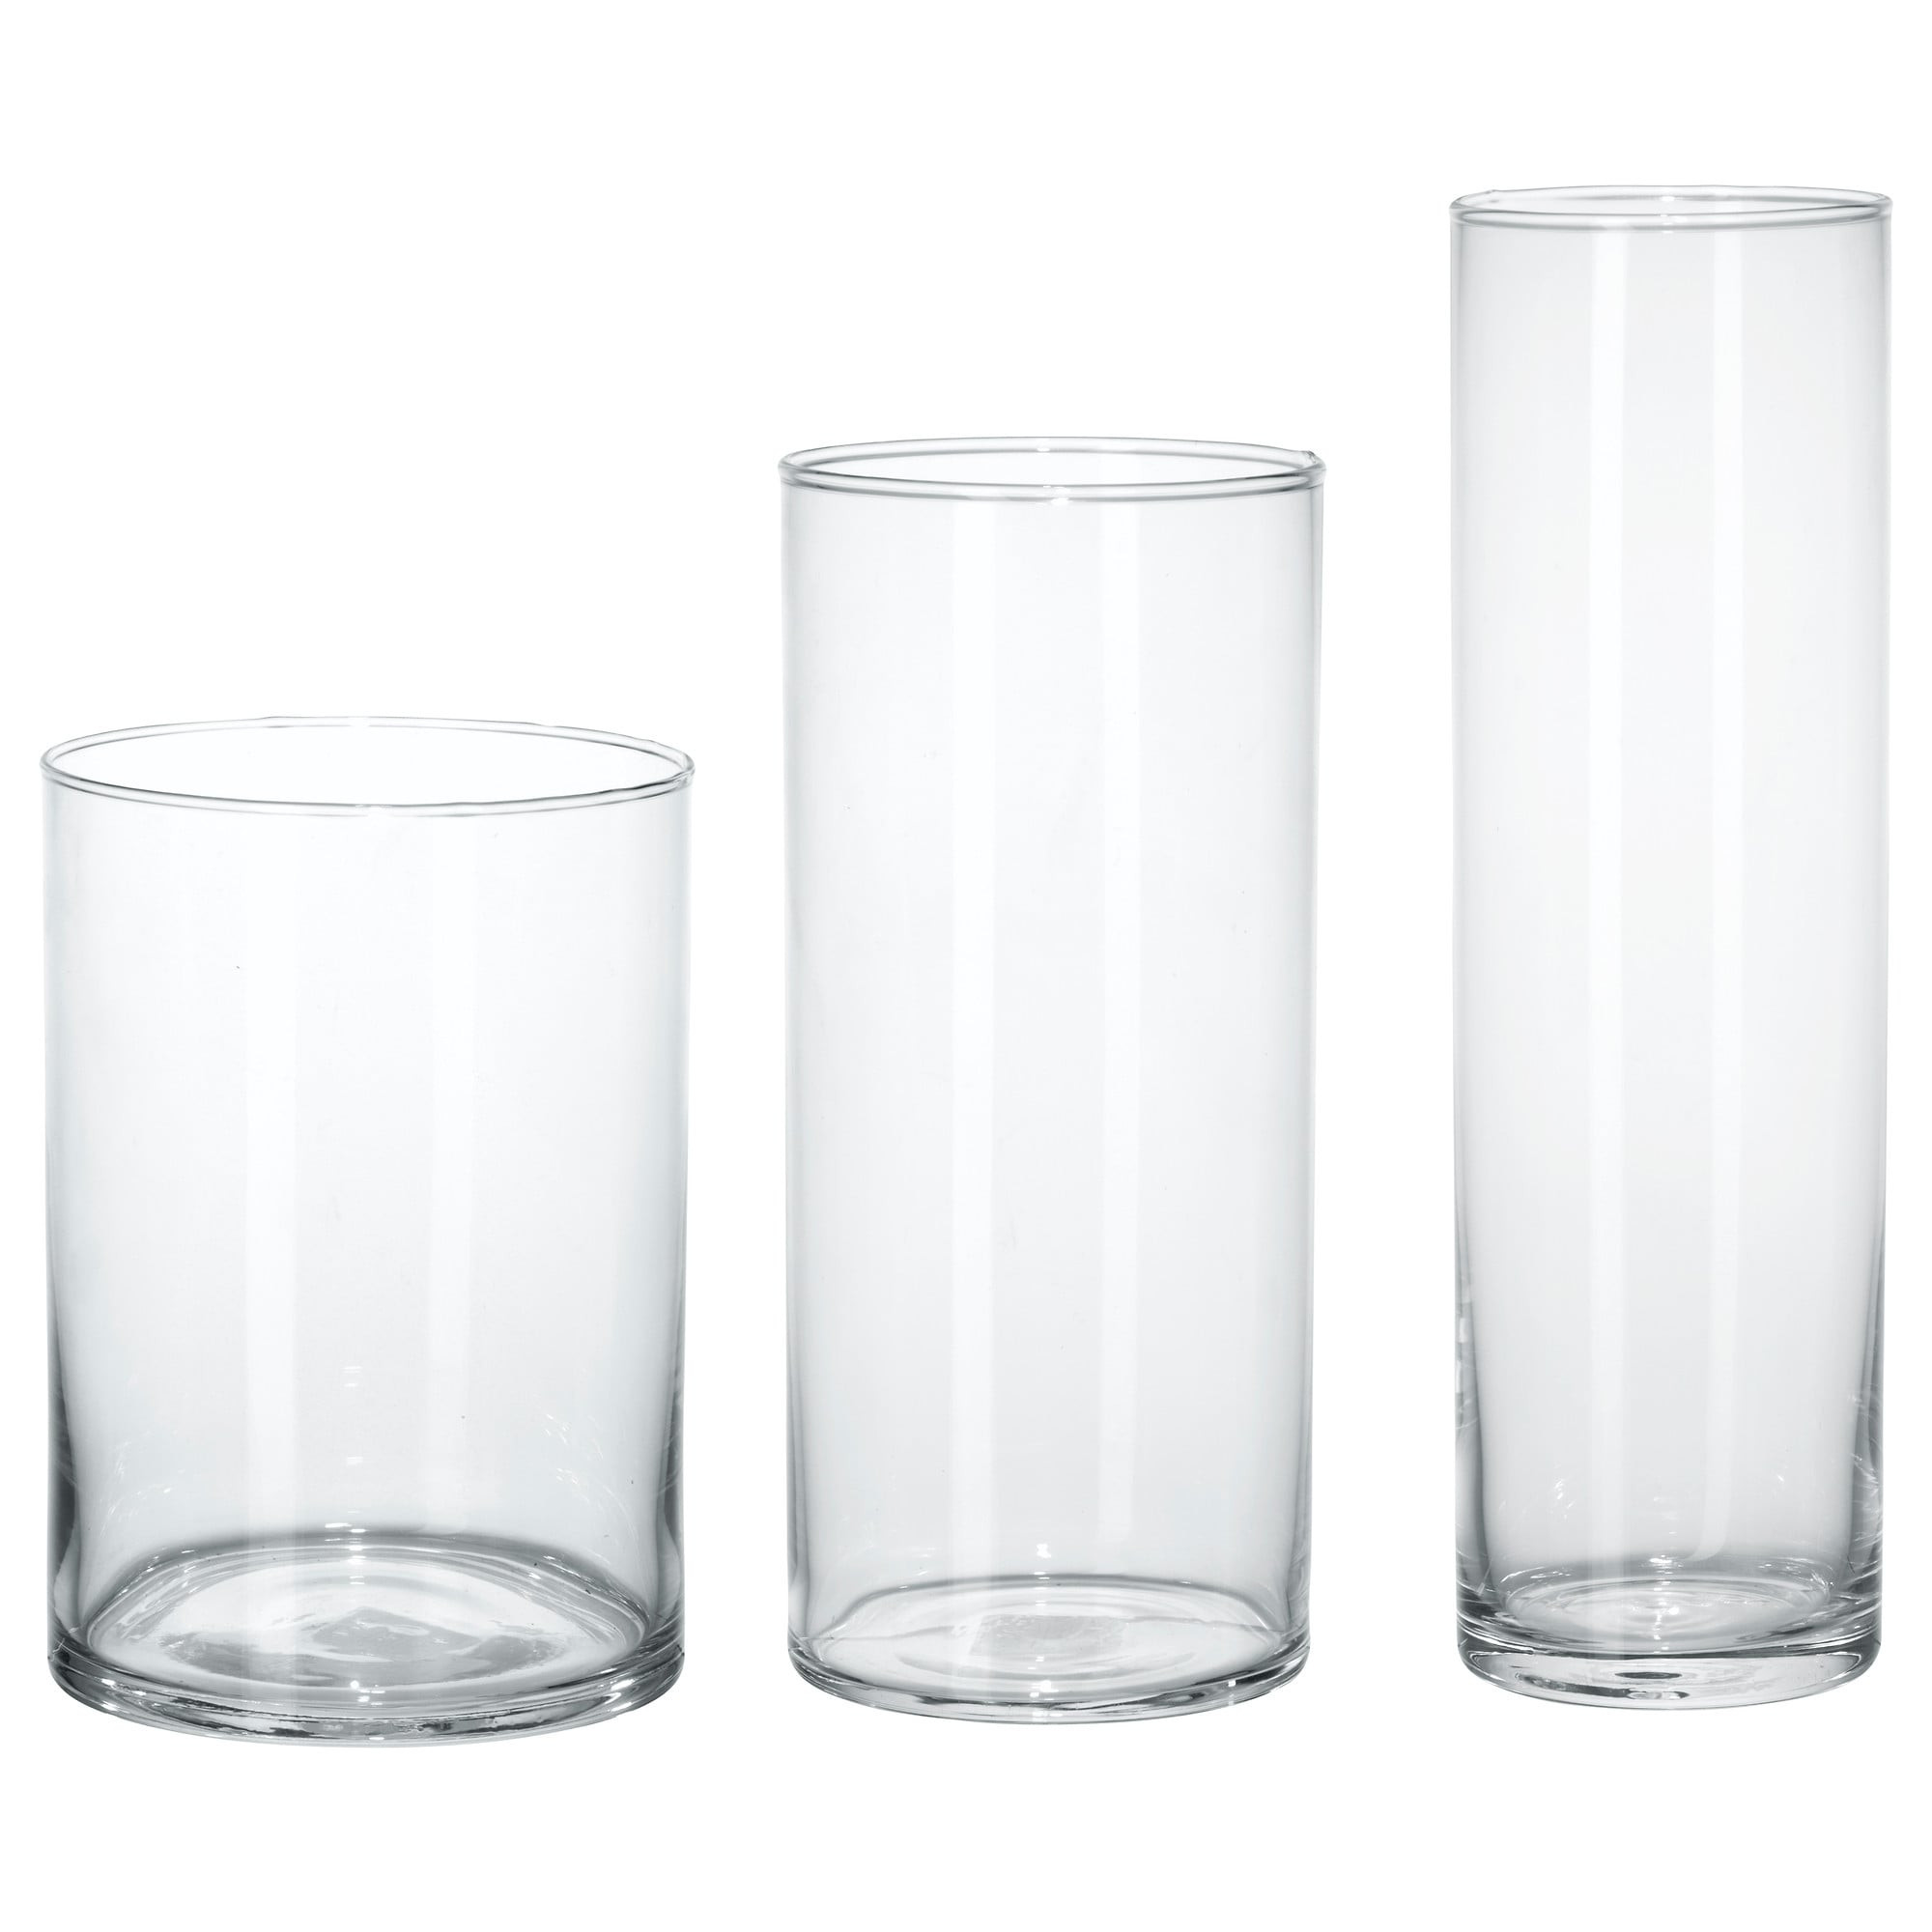 large glass vase decoration ideas of cylinder vase set of 3 ikea pertaining to english frana§ais